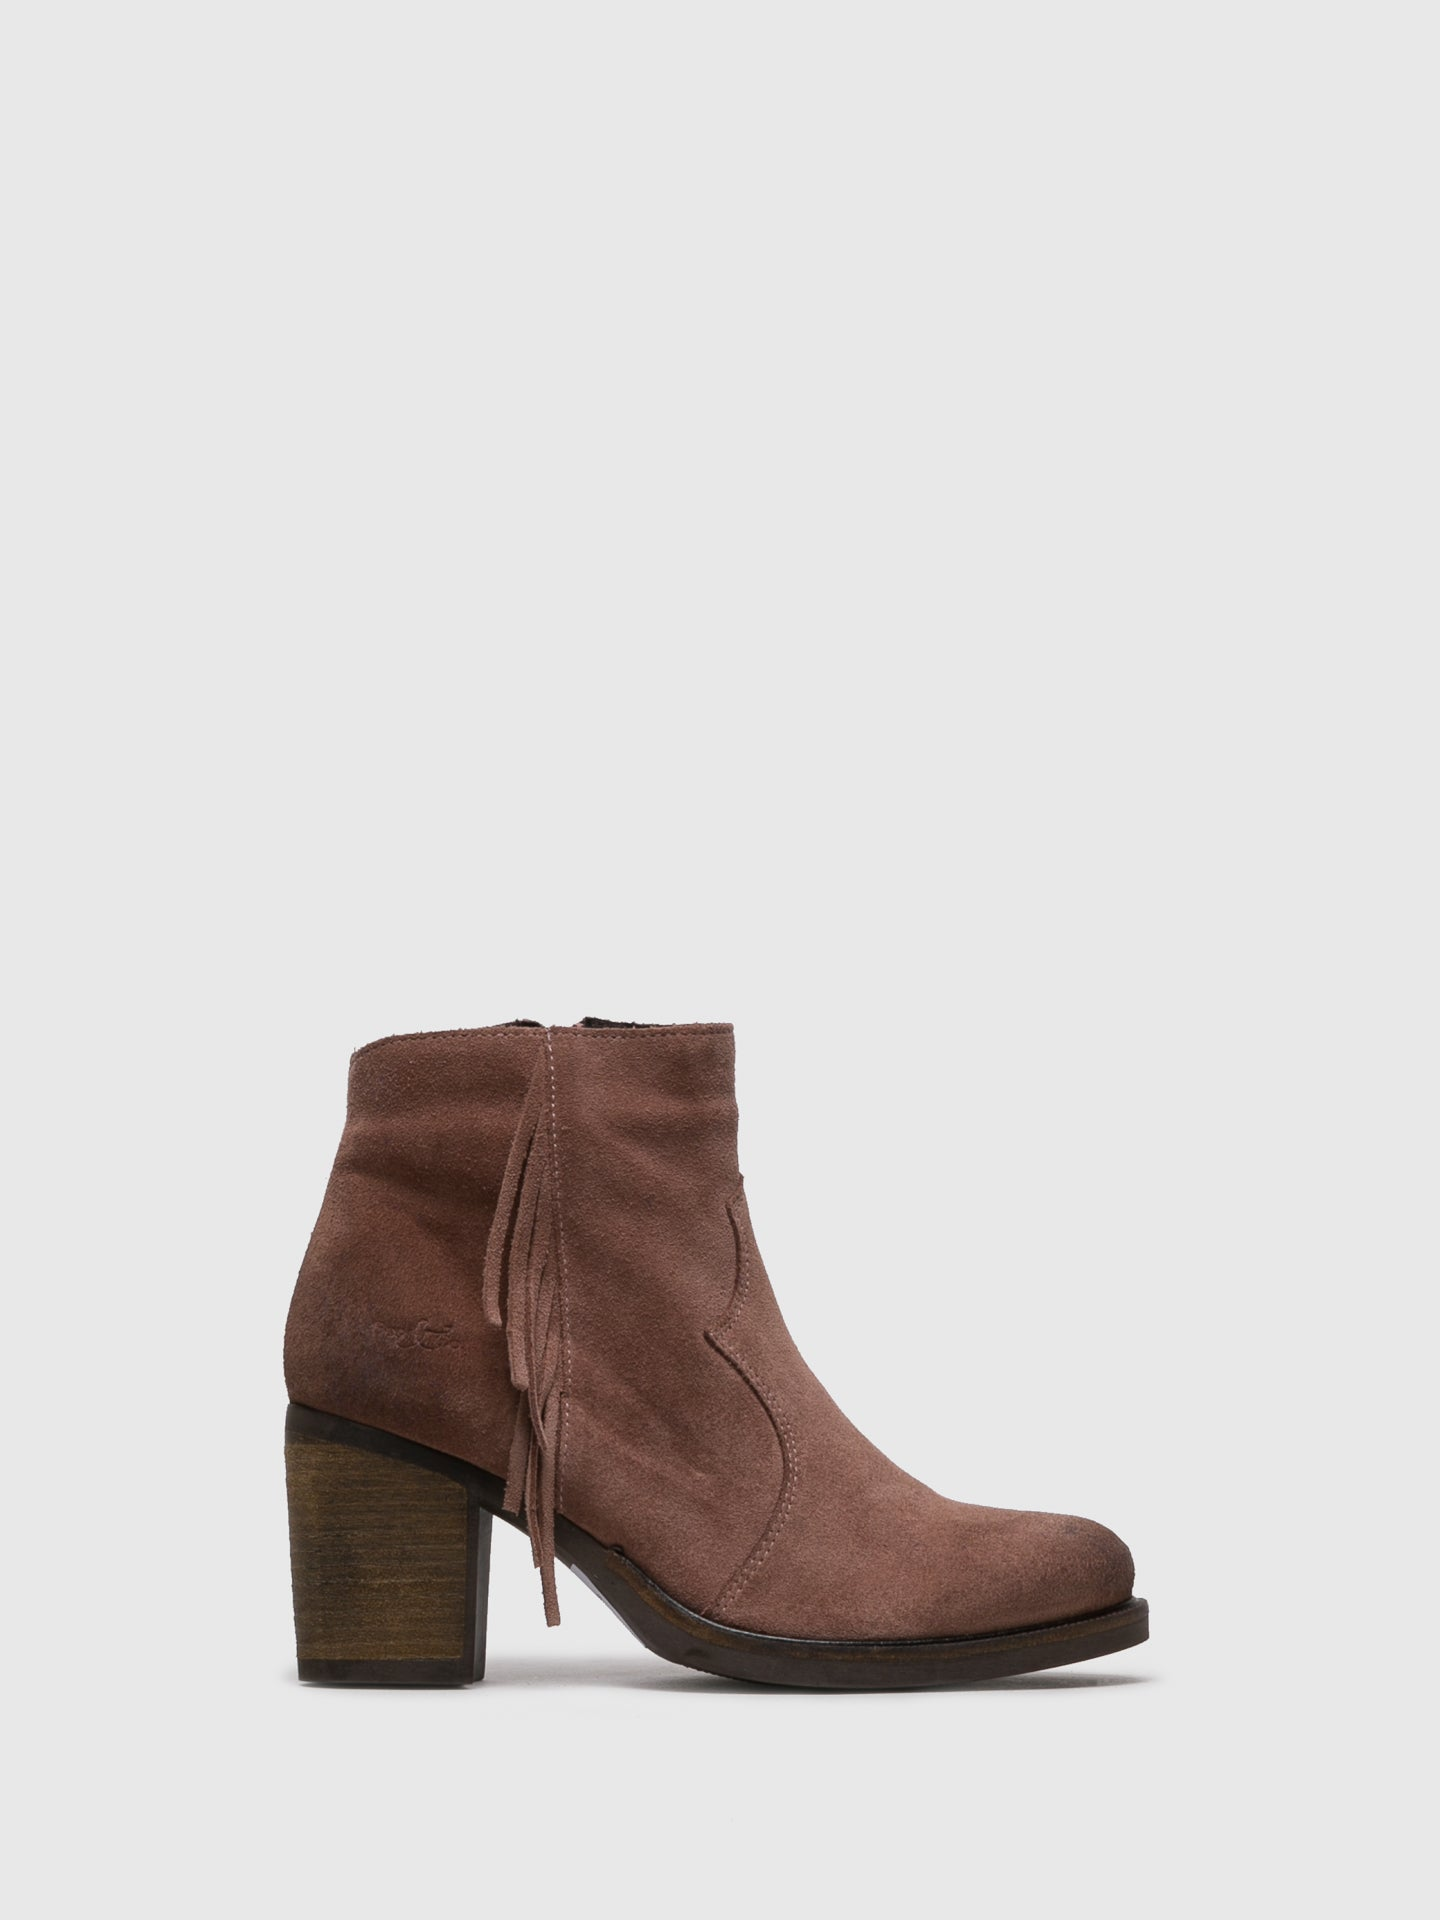 Bos&Co Pink Zip Up Ankle Boots